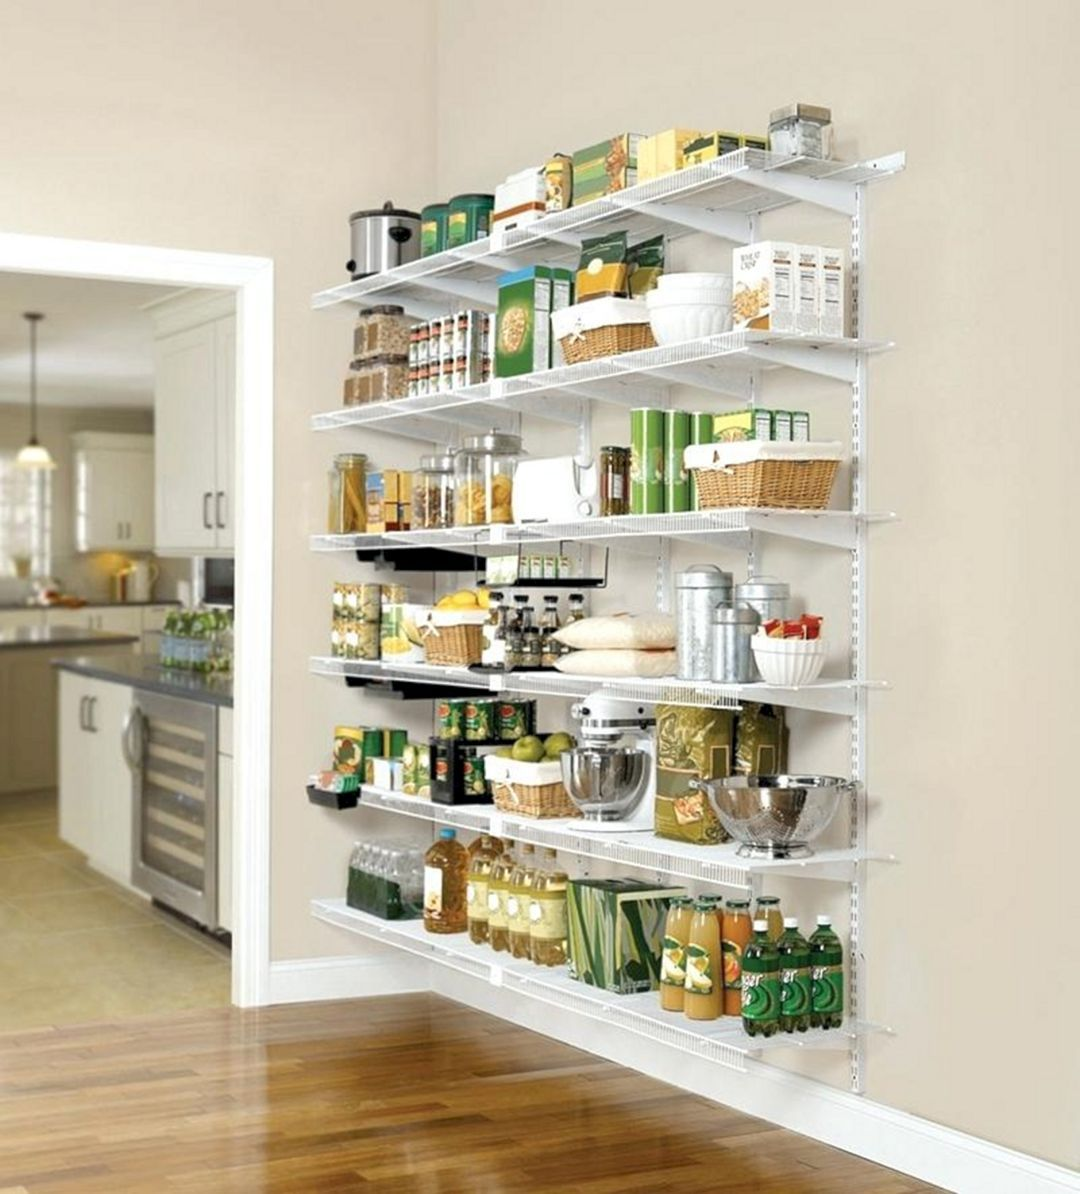 30 Incredible Kitchen Wall Shelves Design You Have To See